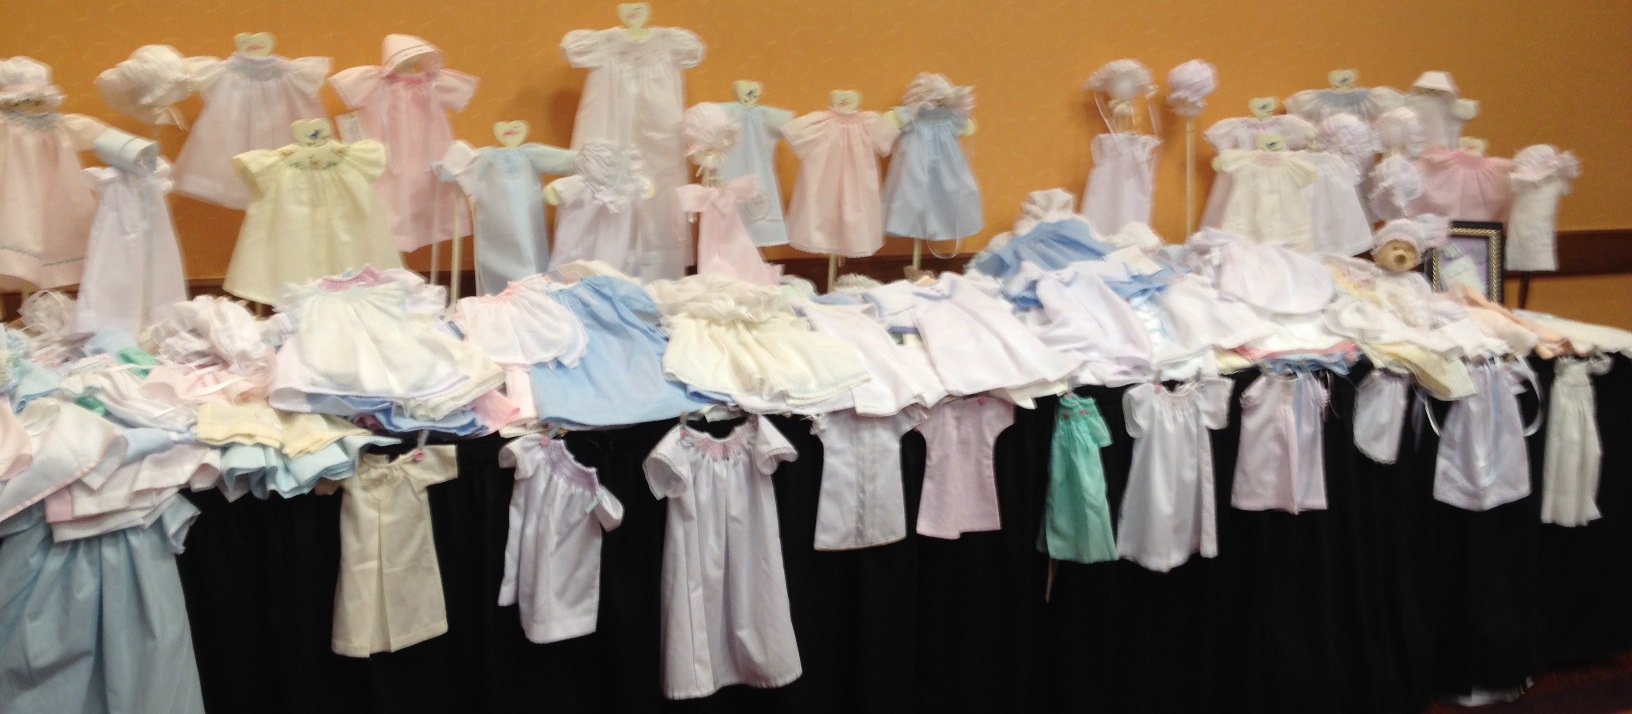 2013 SAGA Convention - Wee Care Gowns - Lone Star Smockers